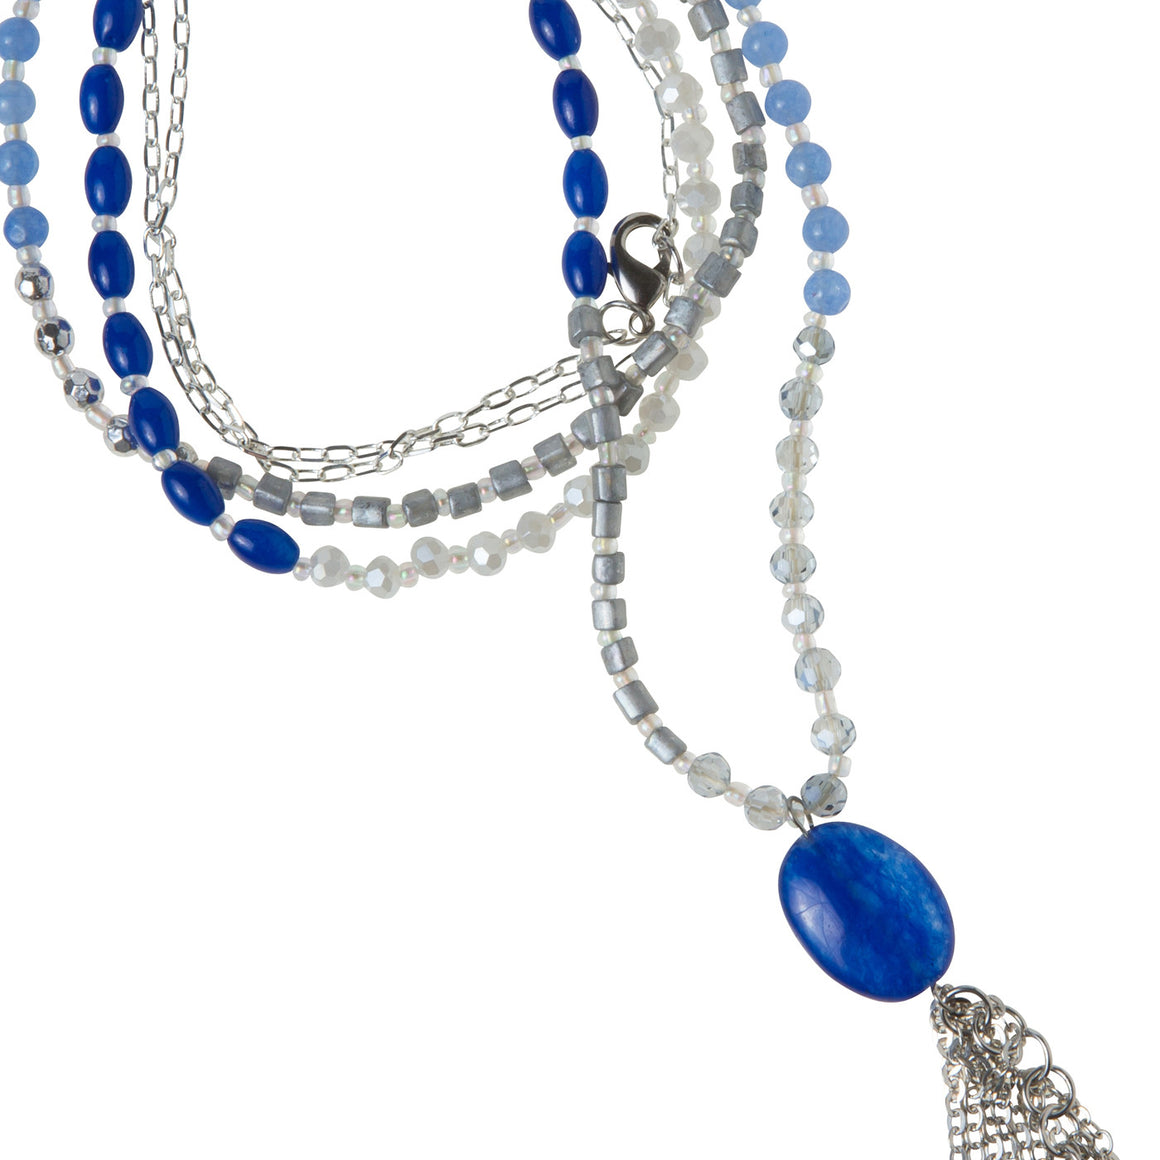 Daily Mala Necklace : cobalt/silver